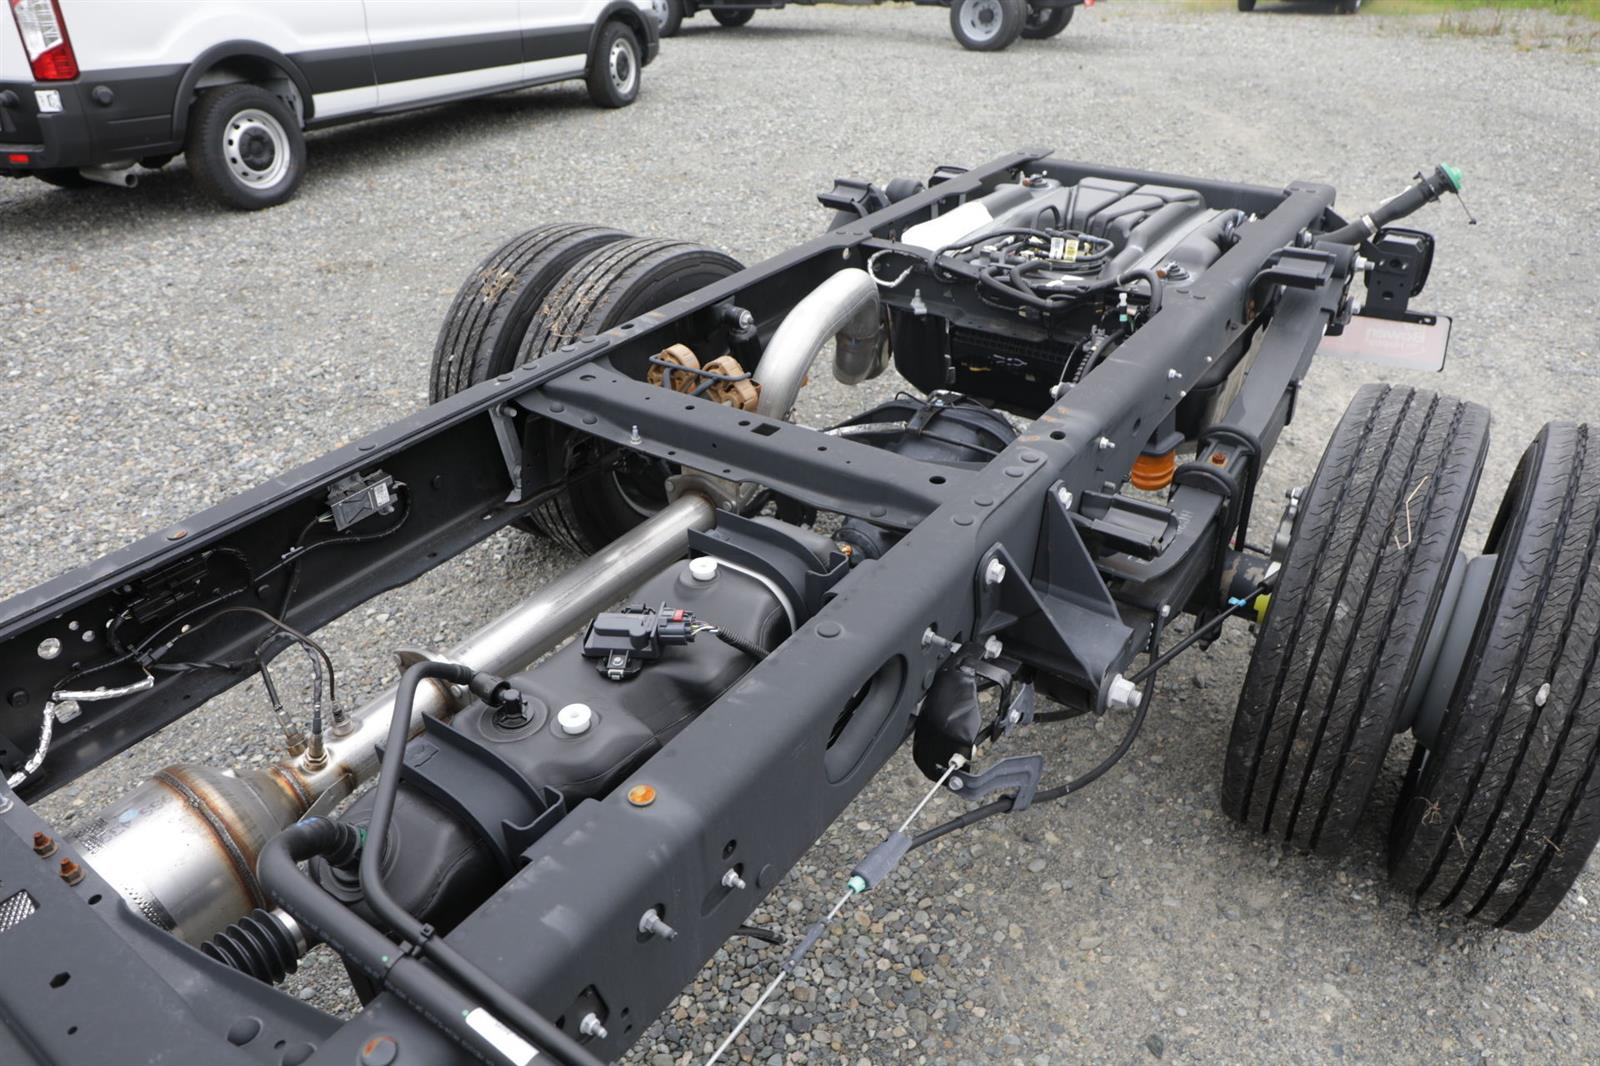 2020 Ford F-550 Regular Cab DRW 4x2, Cab Chassis #E9245 - photo 10